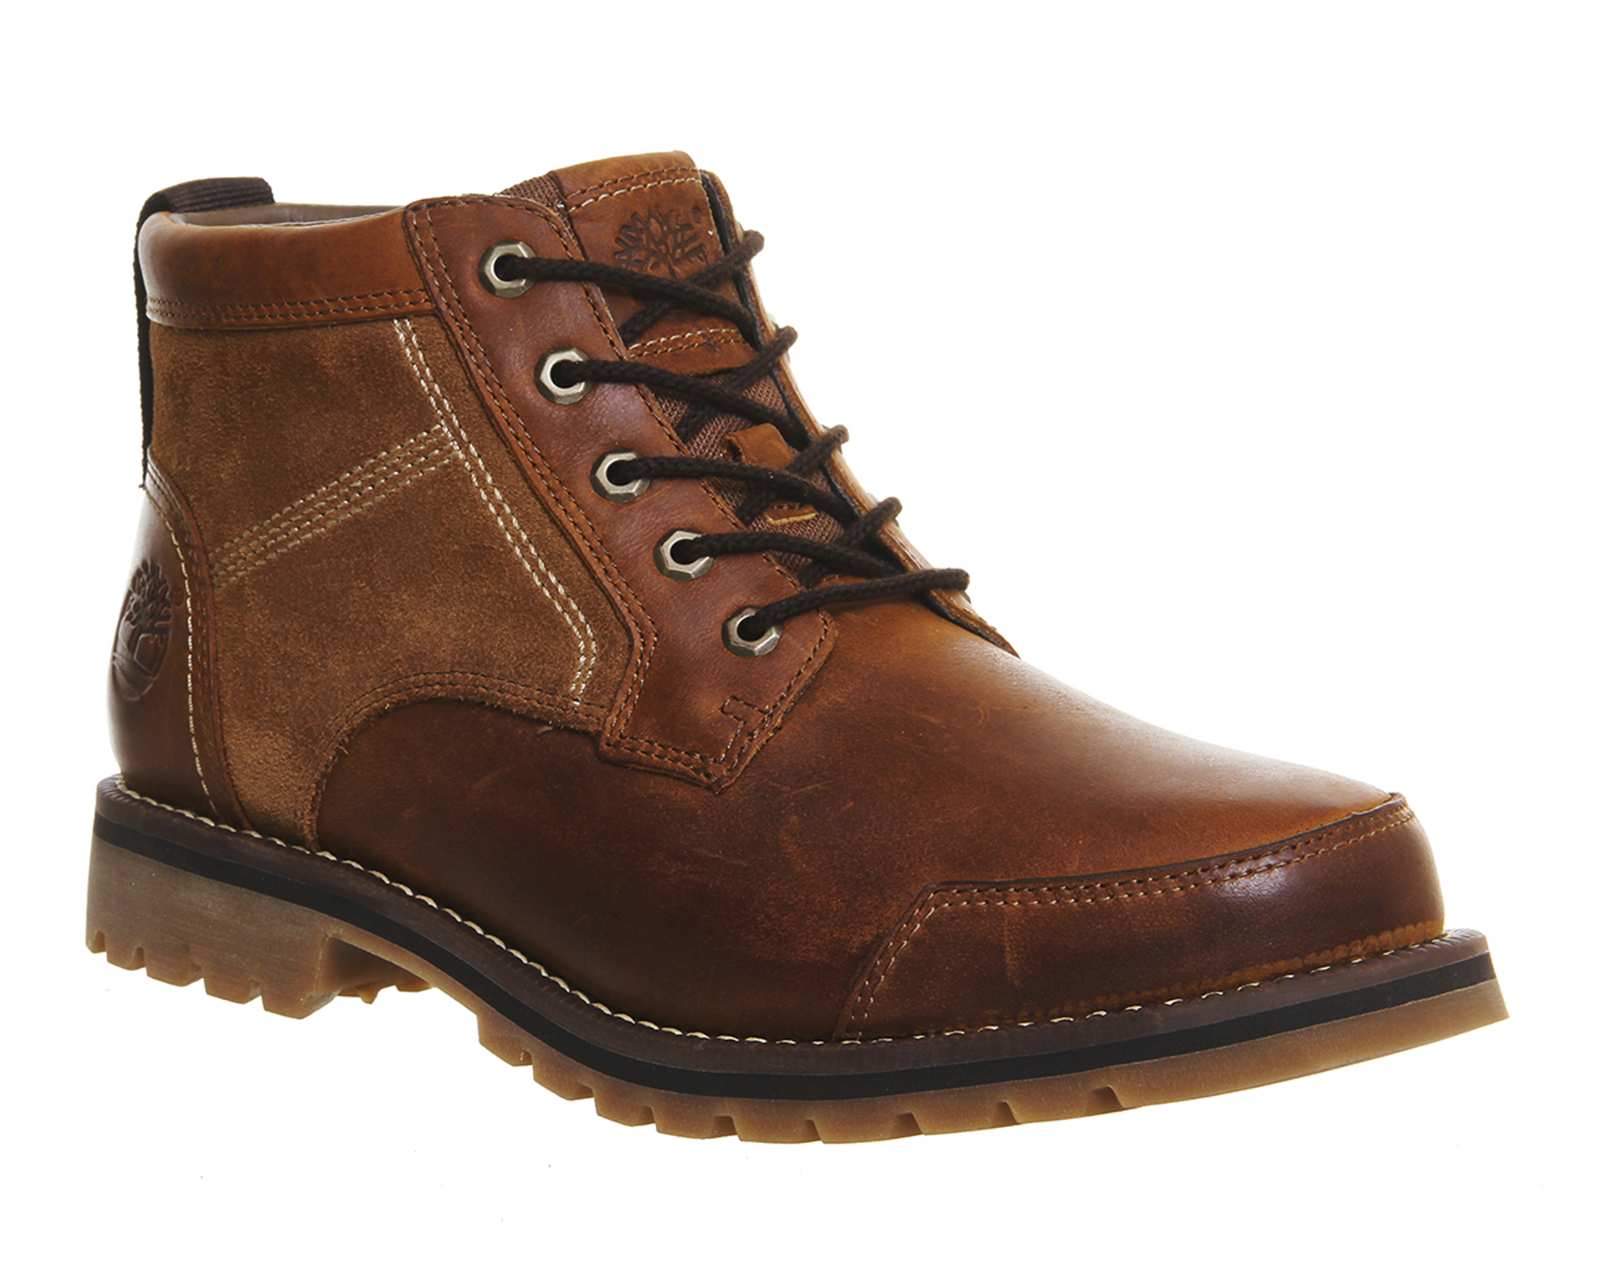 aea3f4a2d70 Mens Timberland Larchmont Chukka Boots OAKWOOD LEATHER Boots